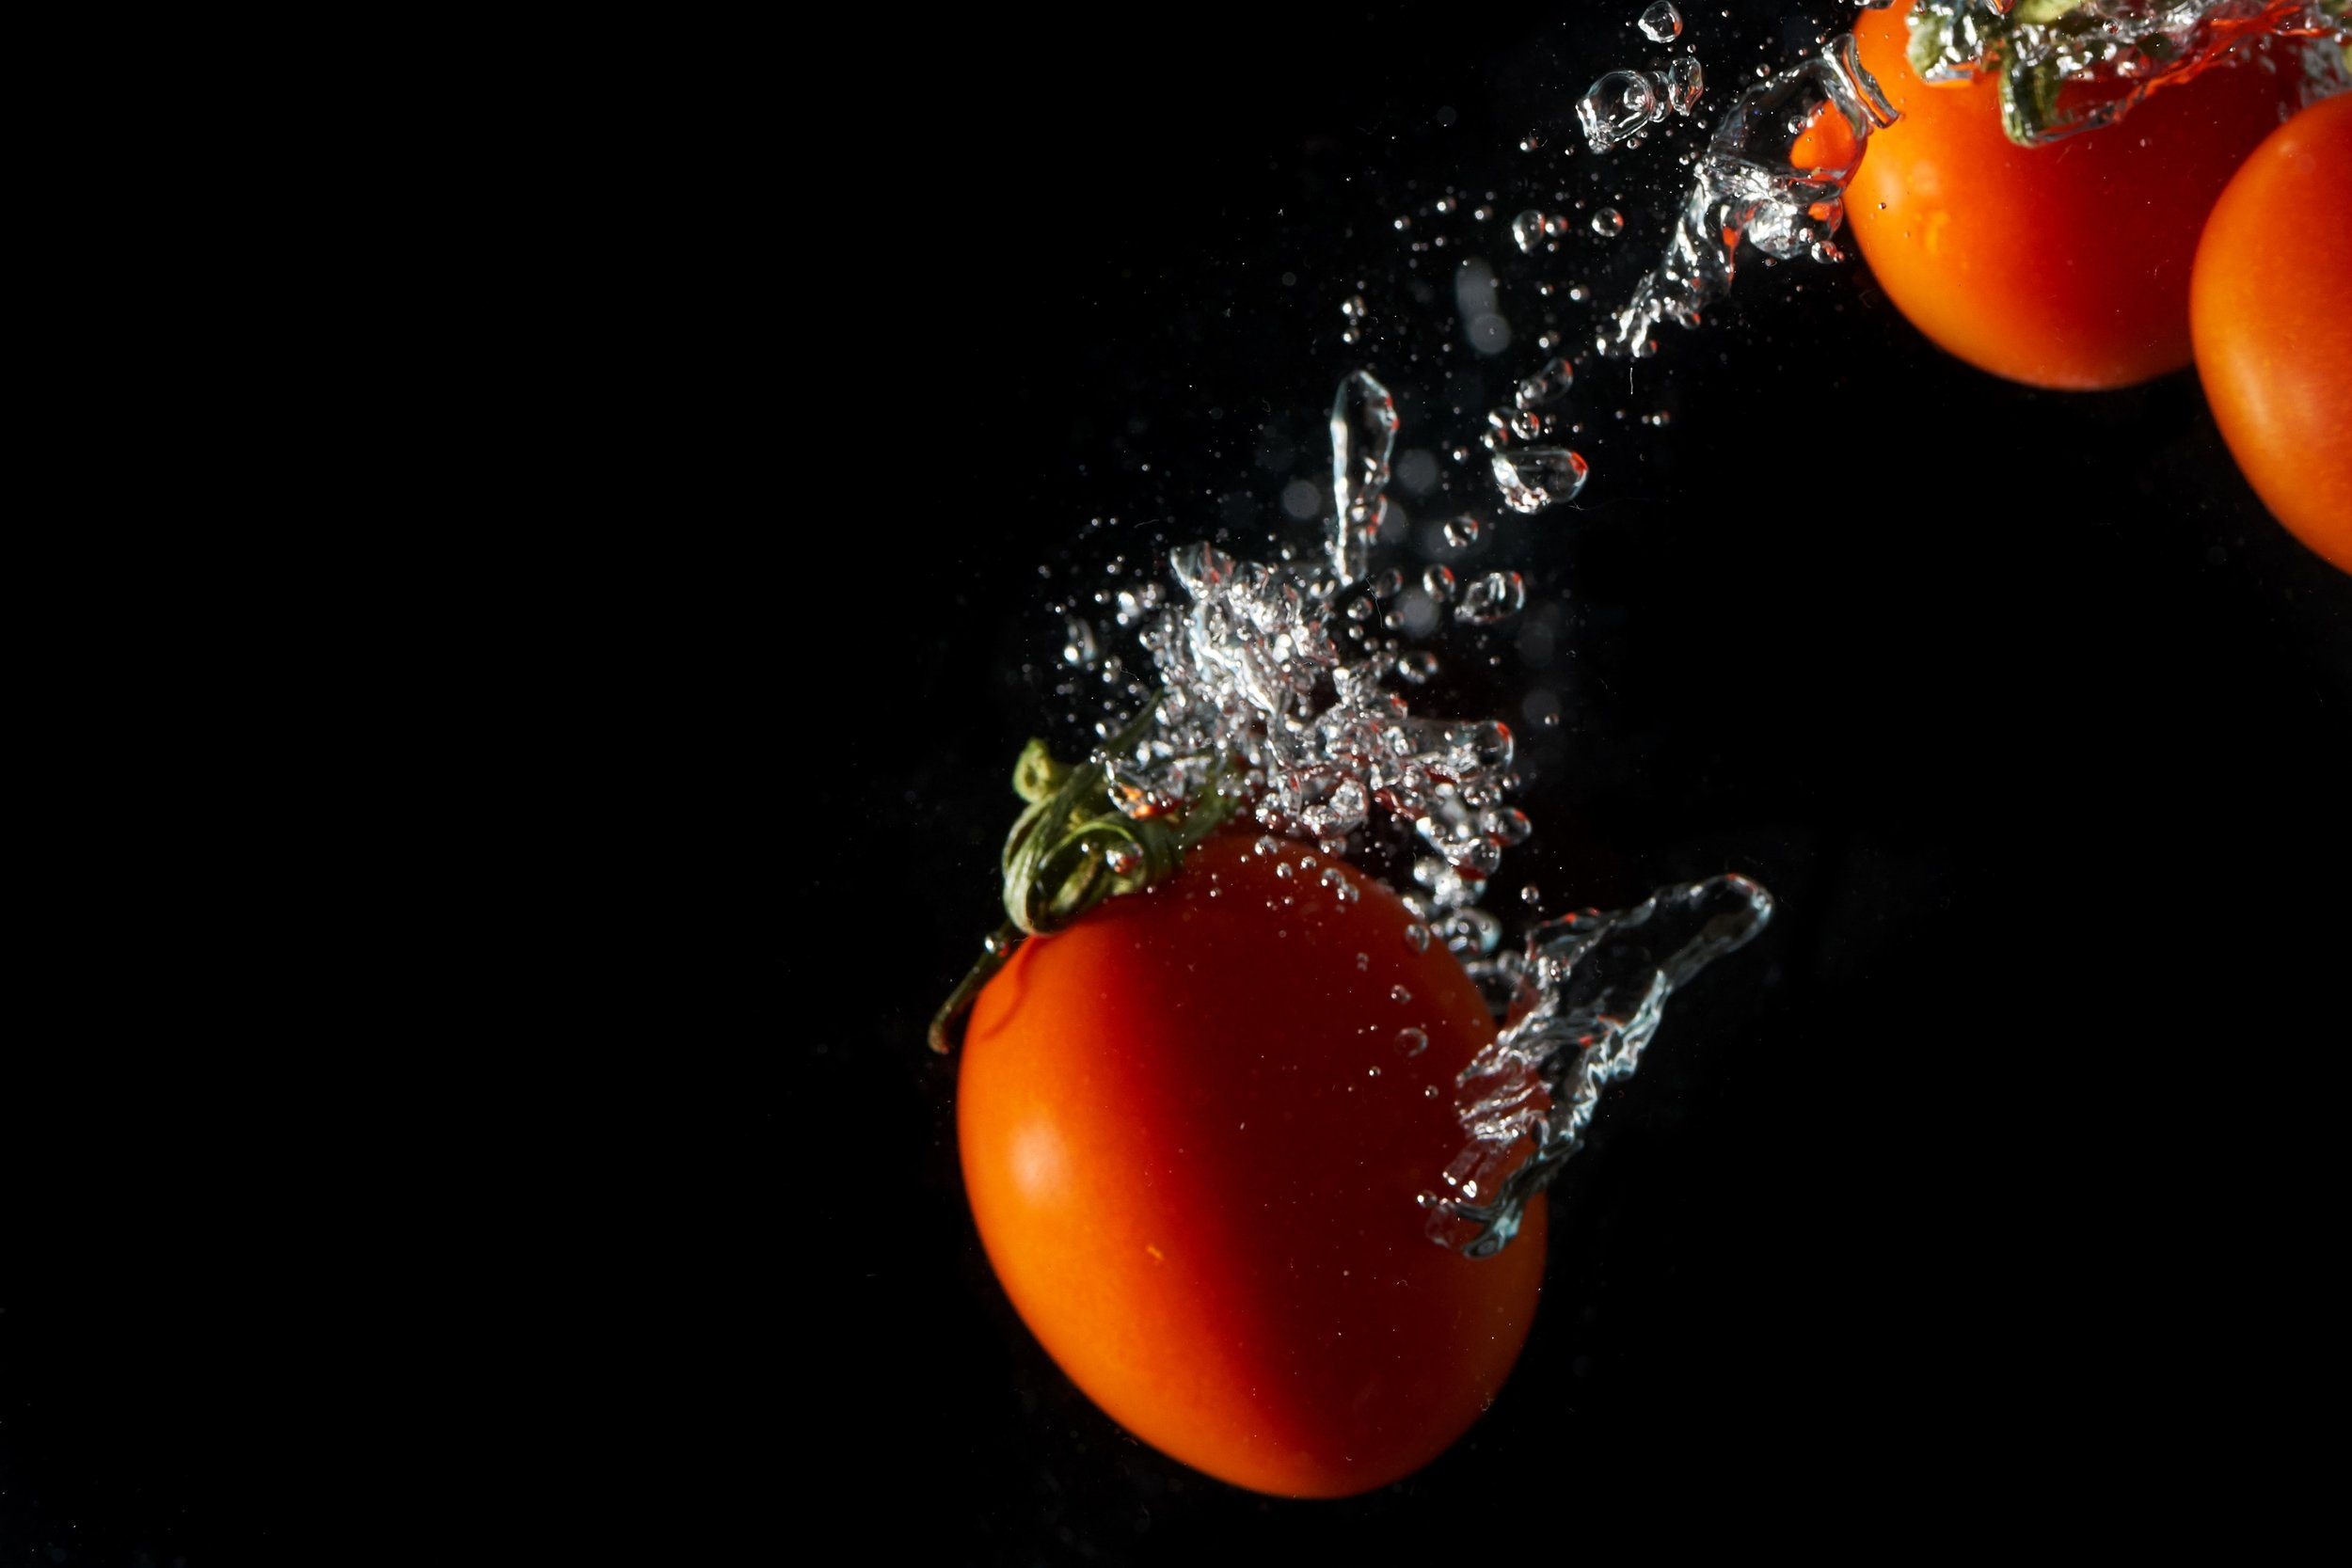 black-background-food-fresh-1667642.jpg